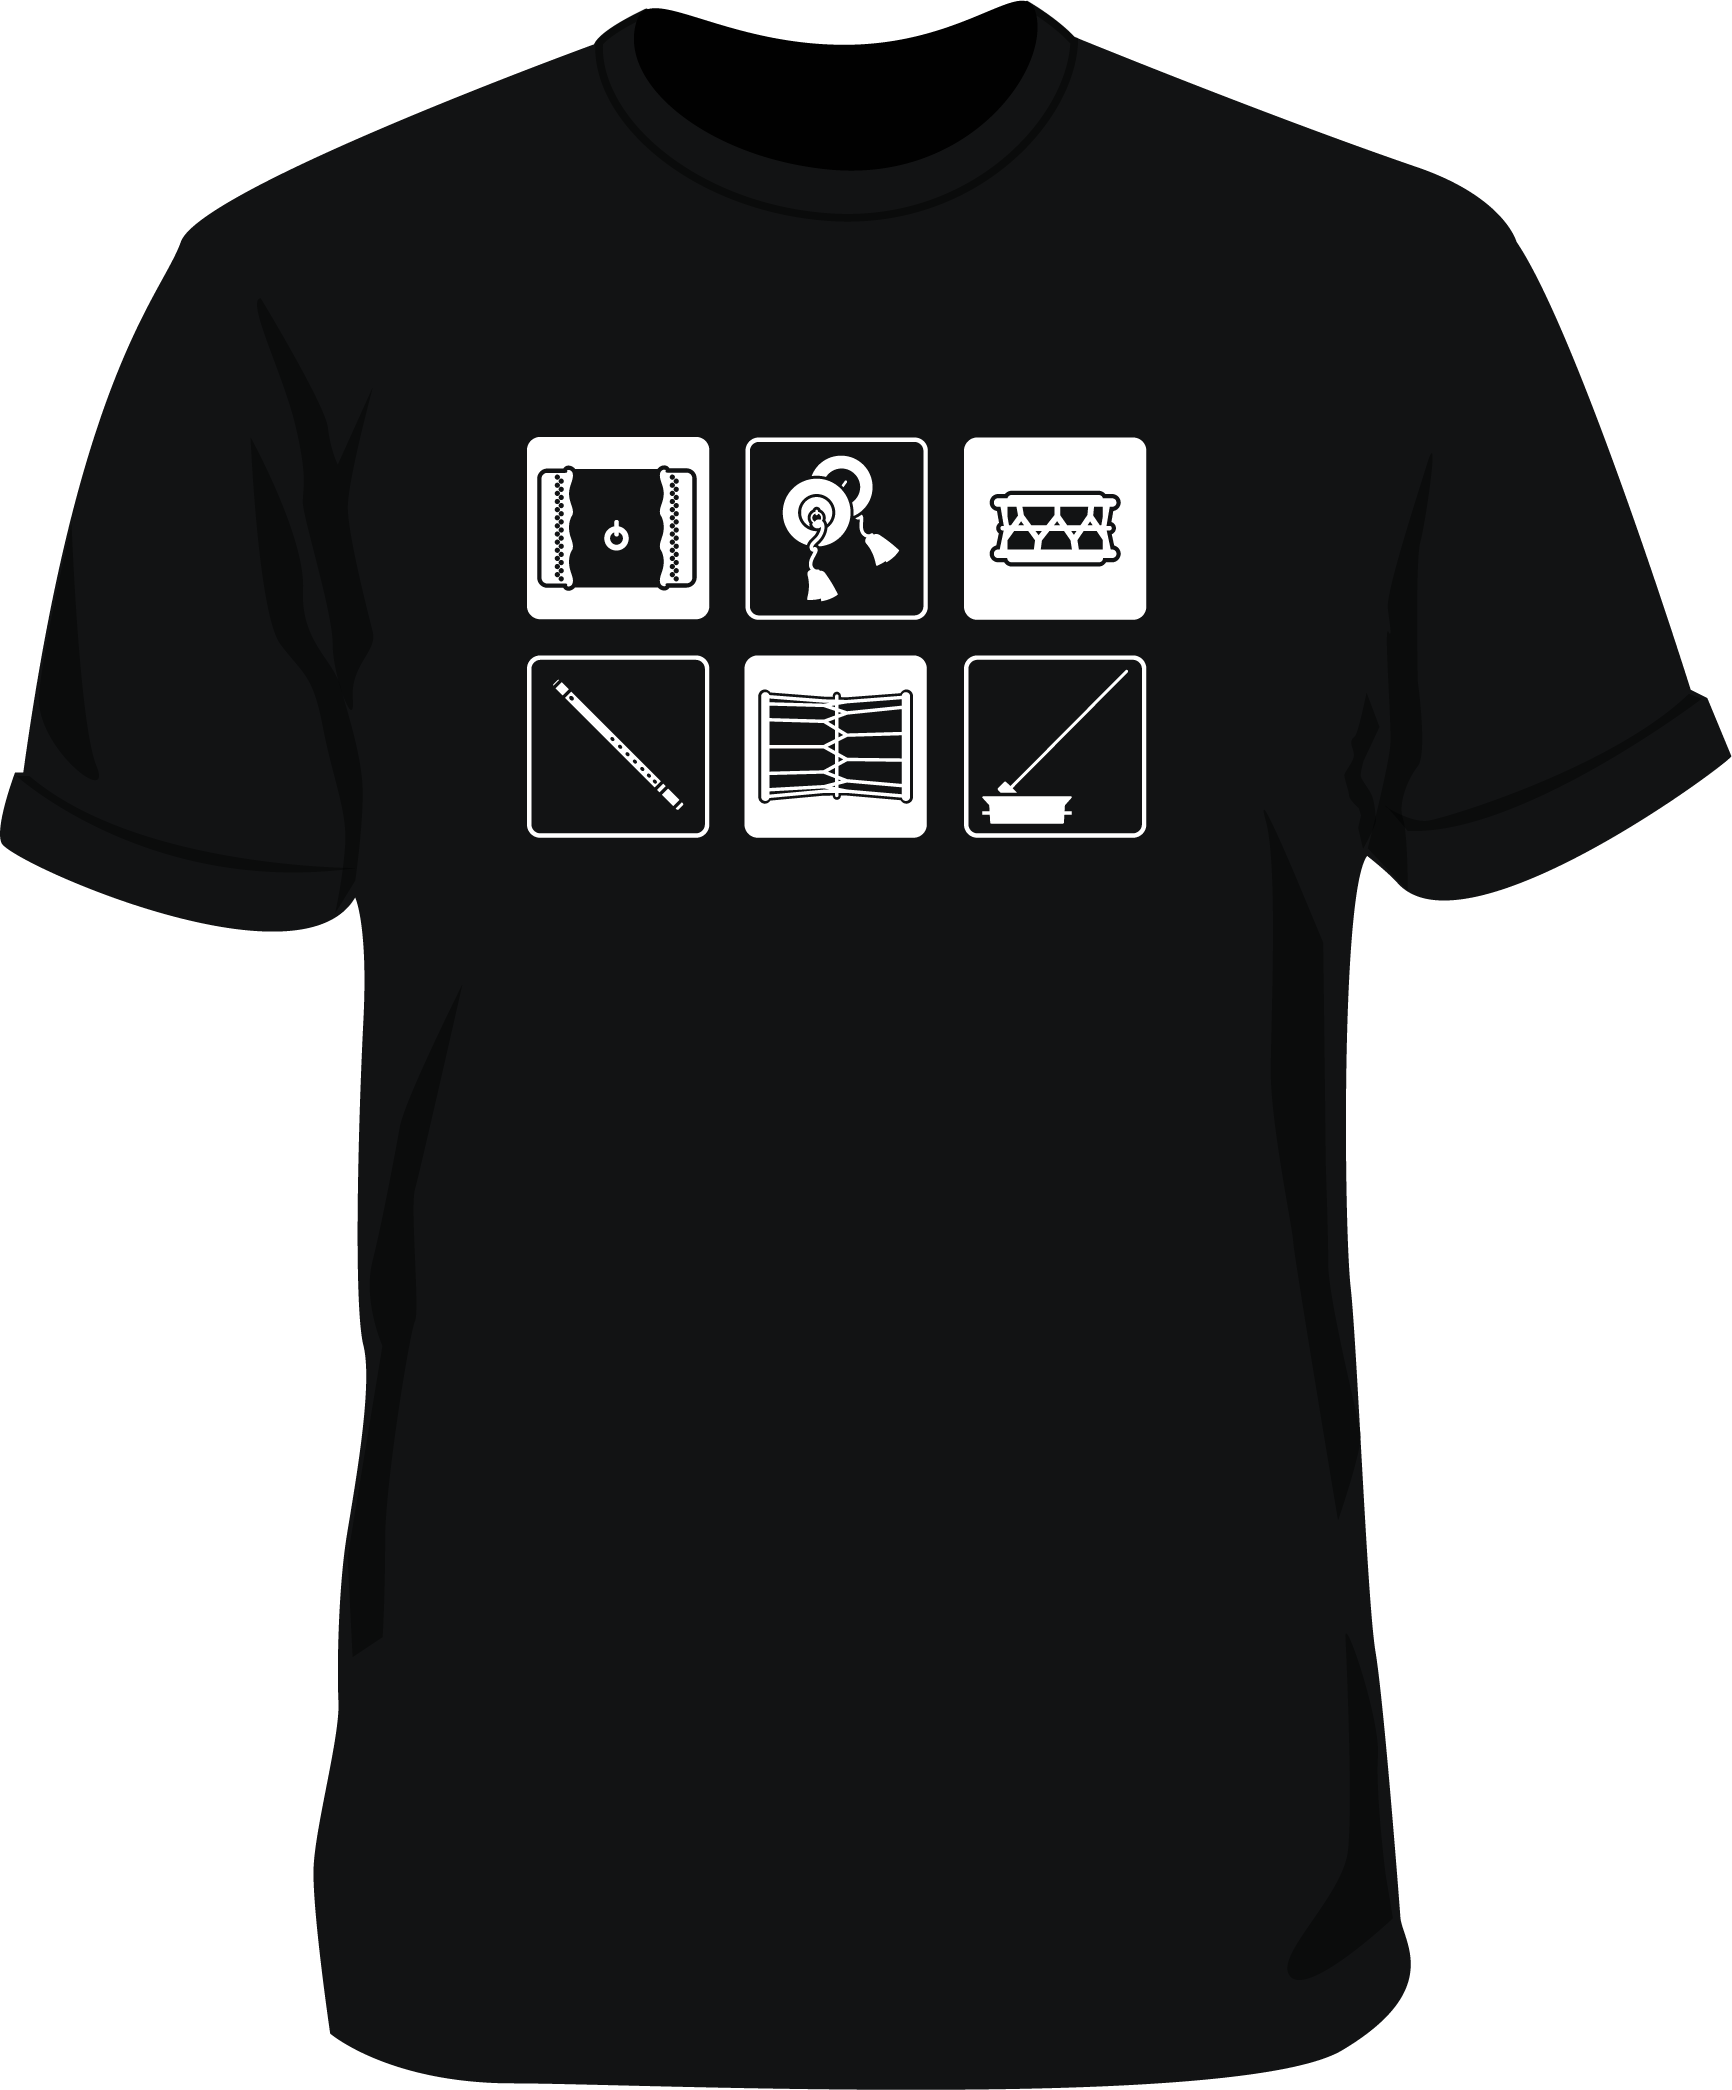 CONNECT 2018 t-shirt